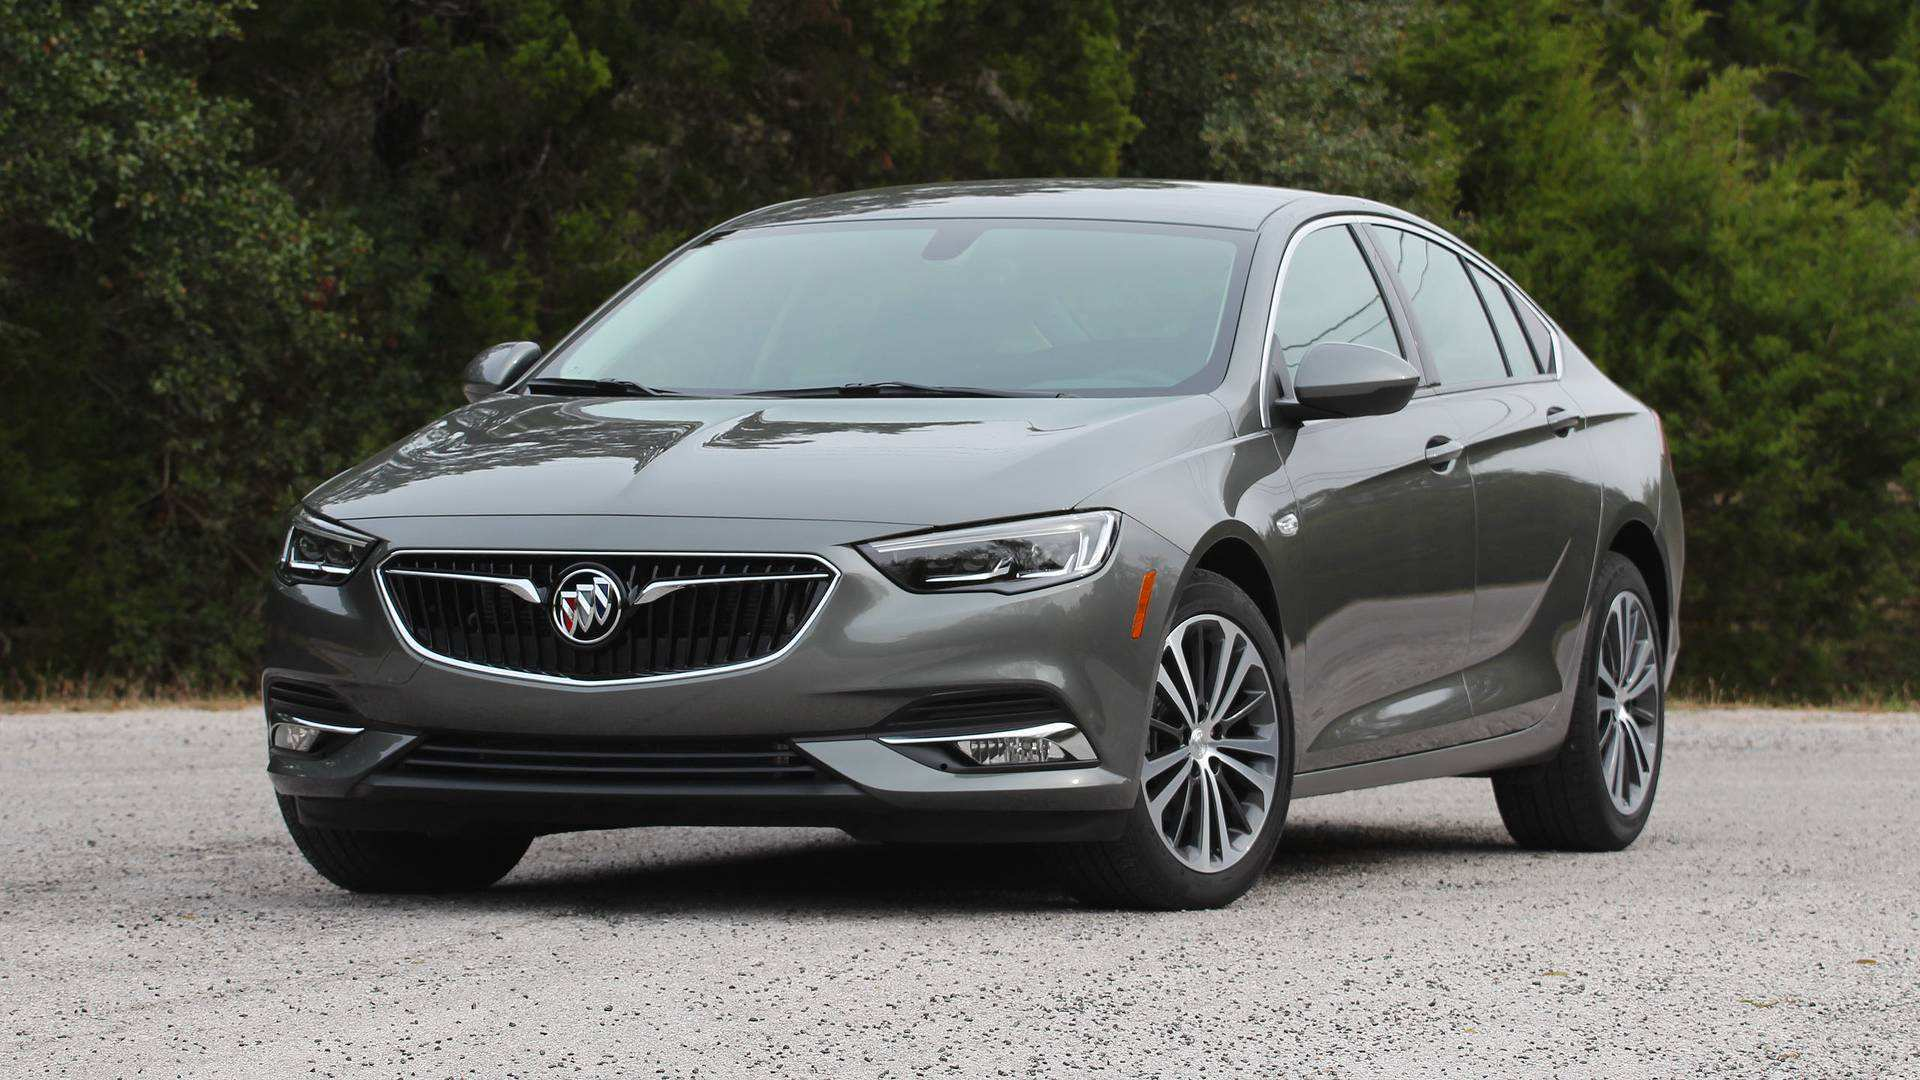 79 A 2019 Buick Regal Specs